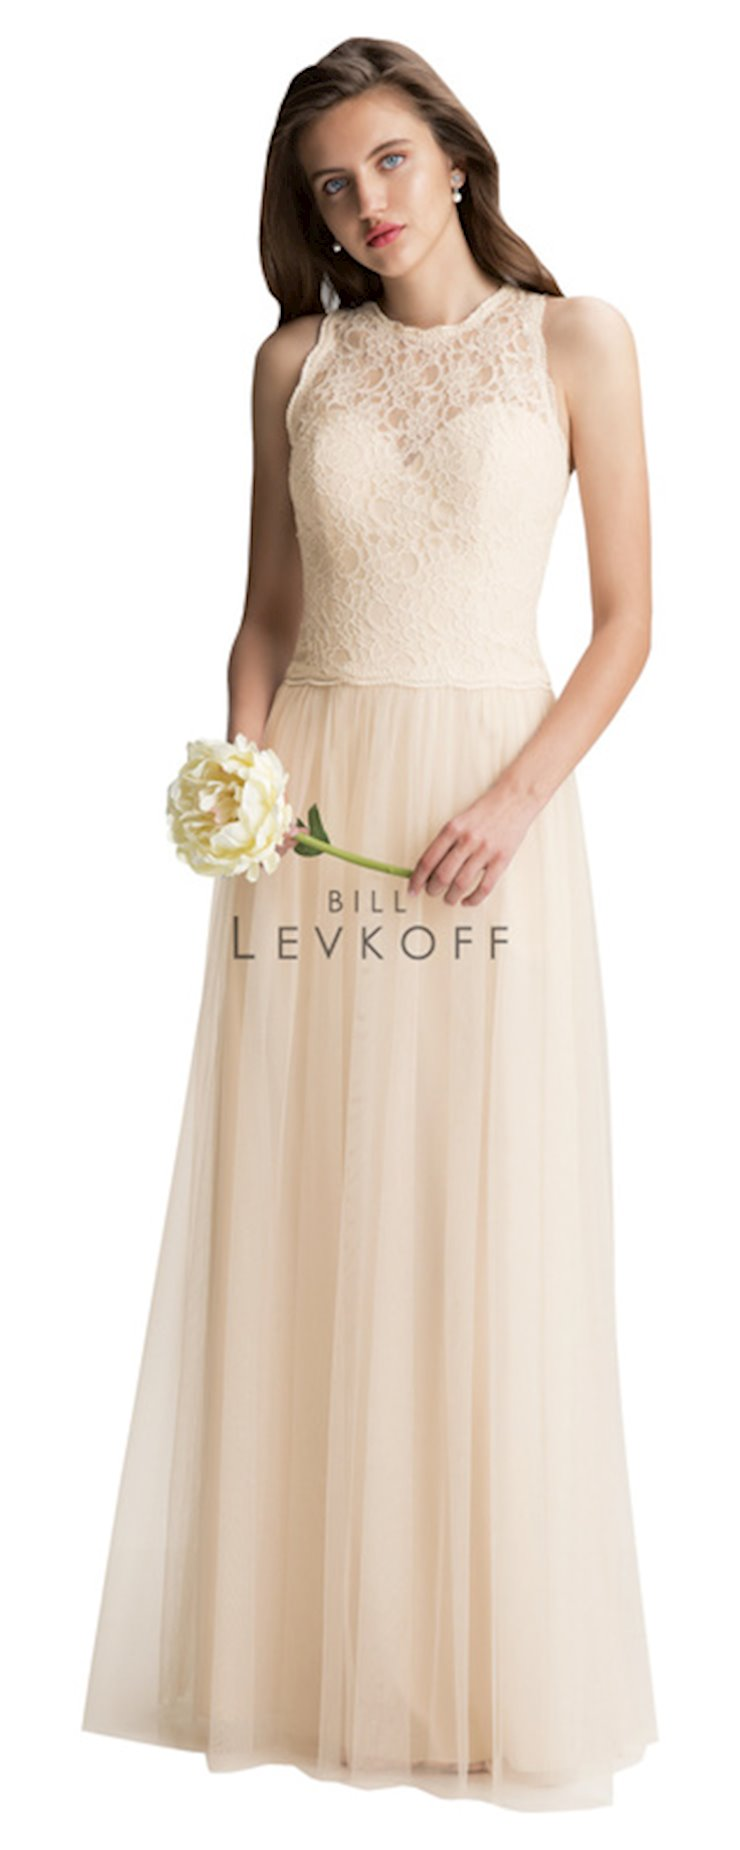 Bill Levkoff Style #1424 Image